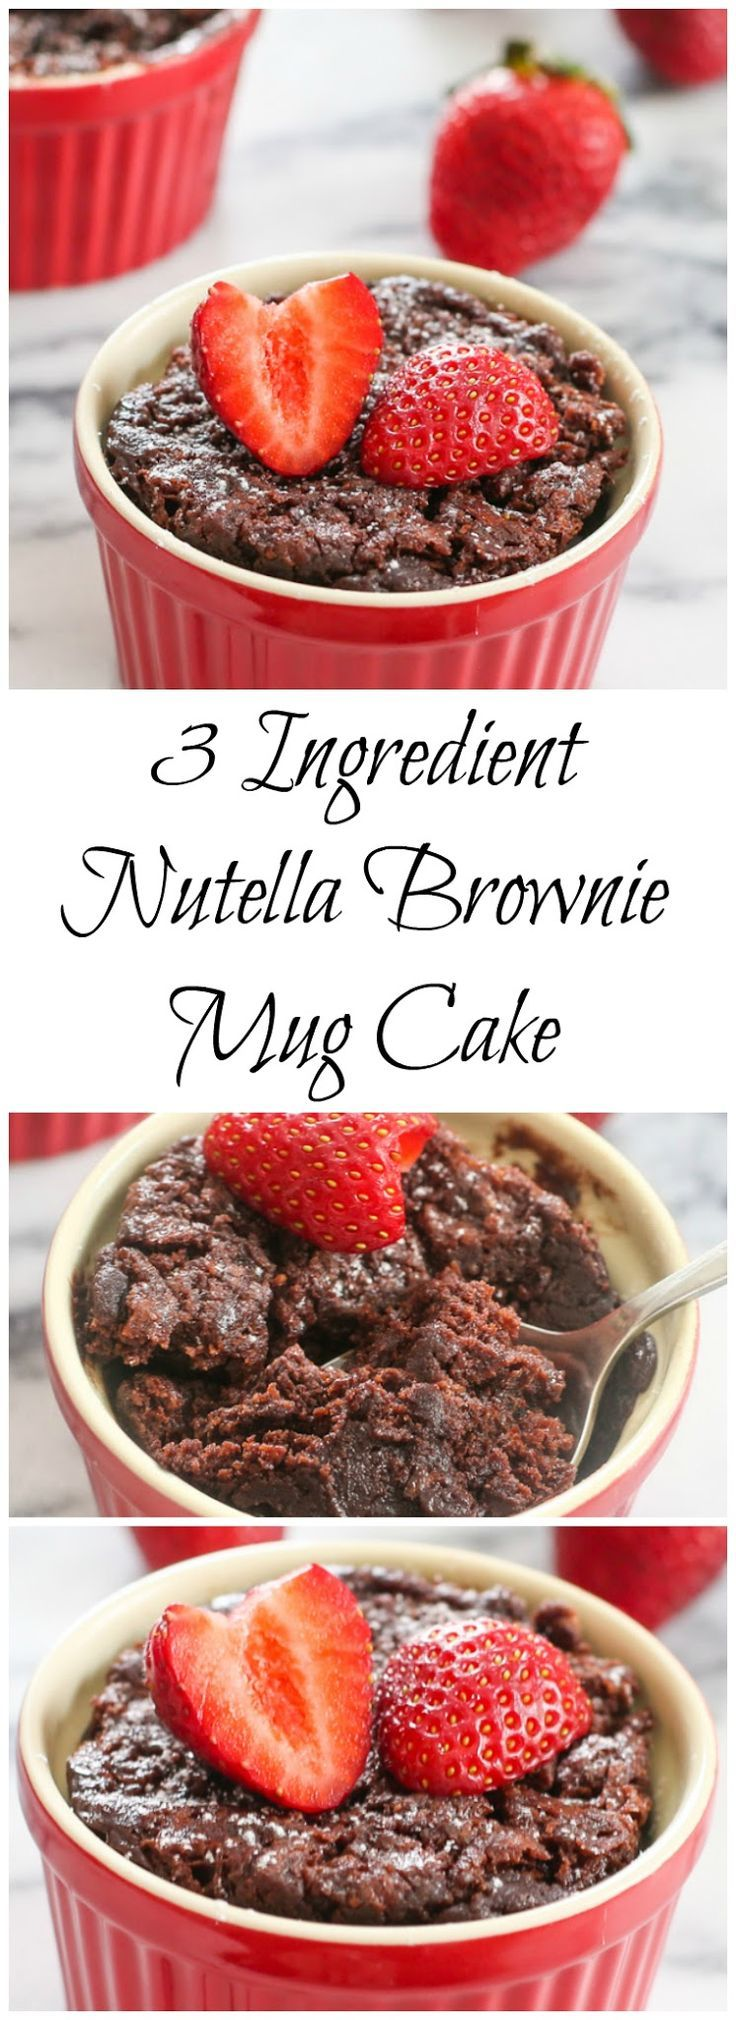 3 Ingredient Nutella Brownie Mug Cake for Two. This brownie is so fudgy and chewy!